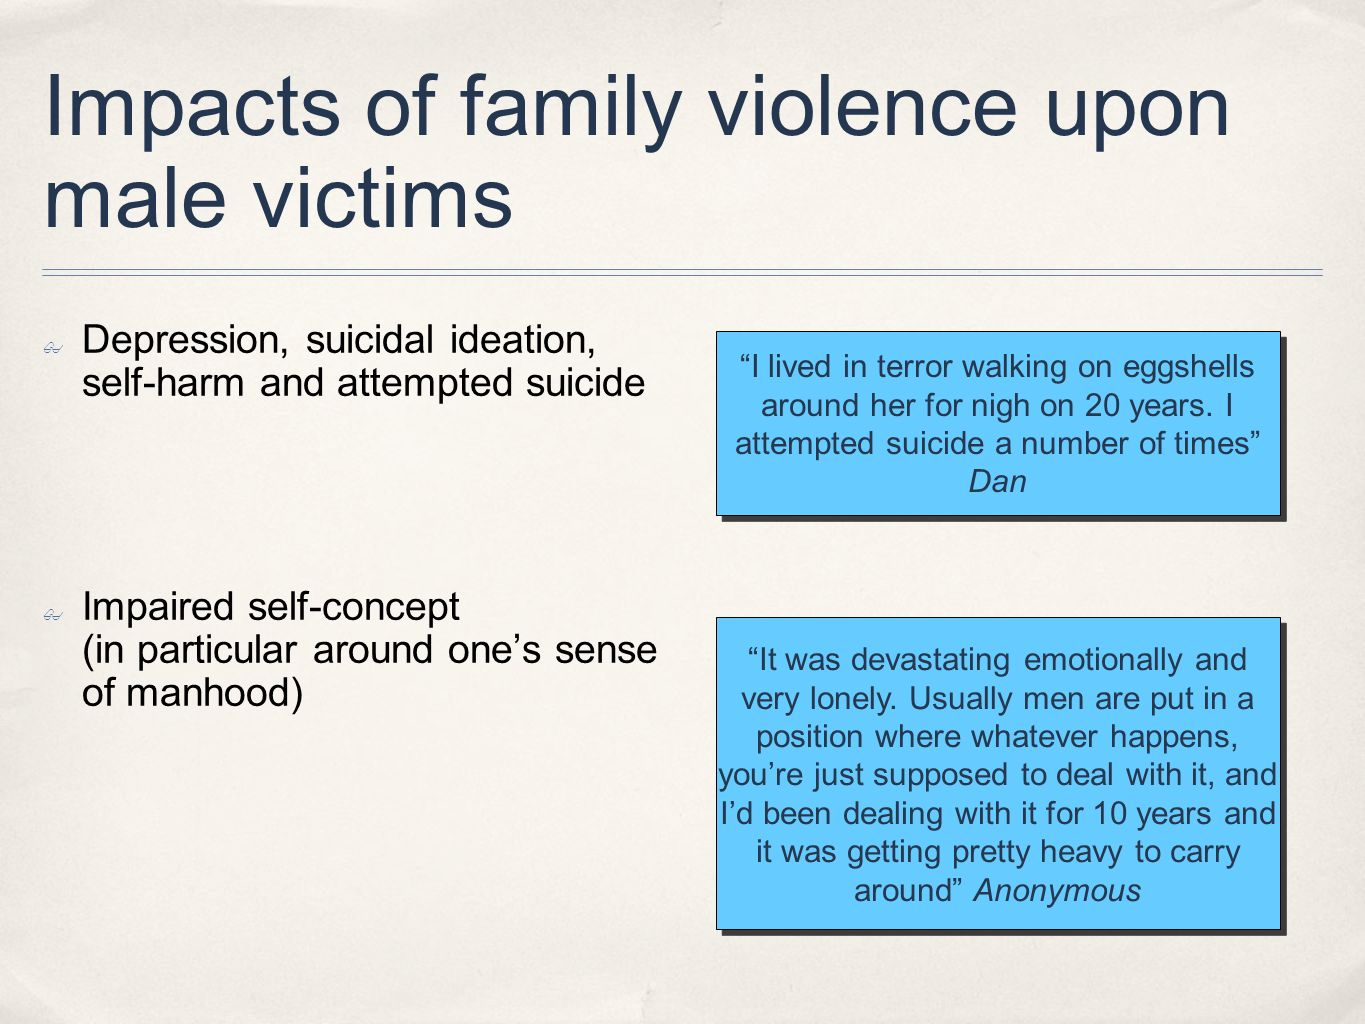 Impacts of family violence upon male victims Depression, suicidal ideation, self-harm and attempted suicide Impaired self-concept (in particular aroun